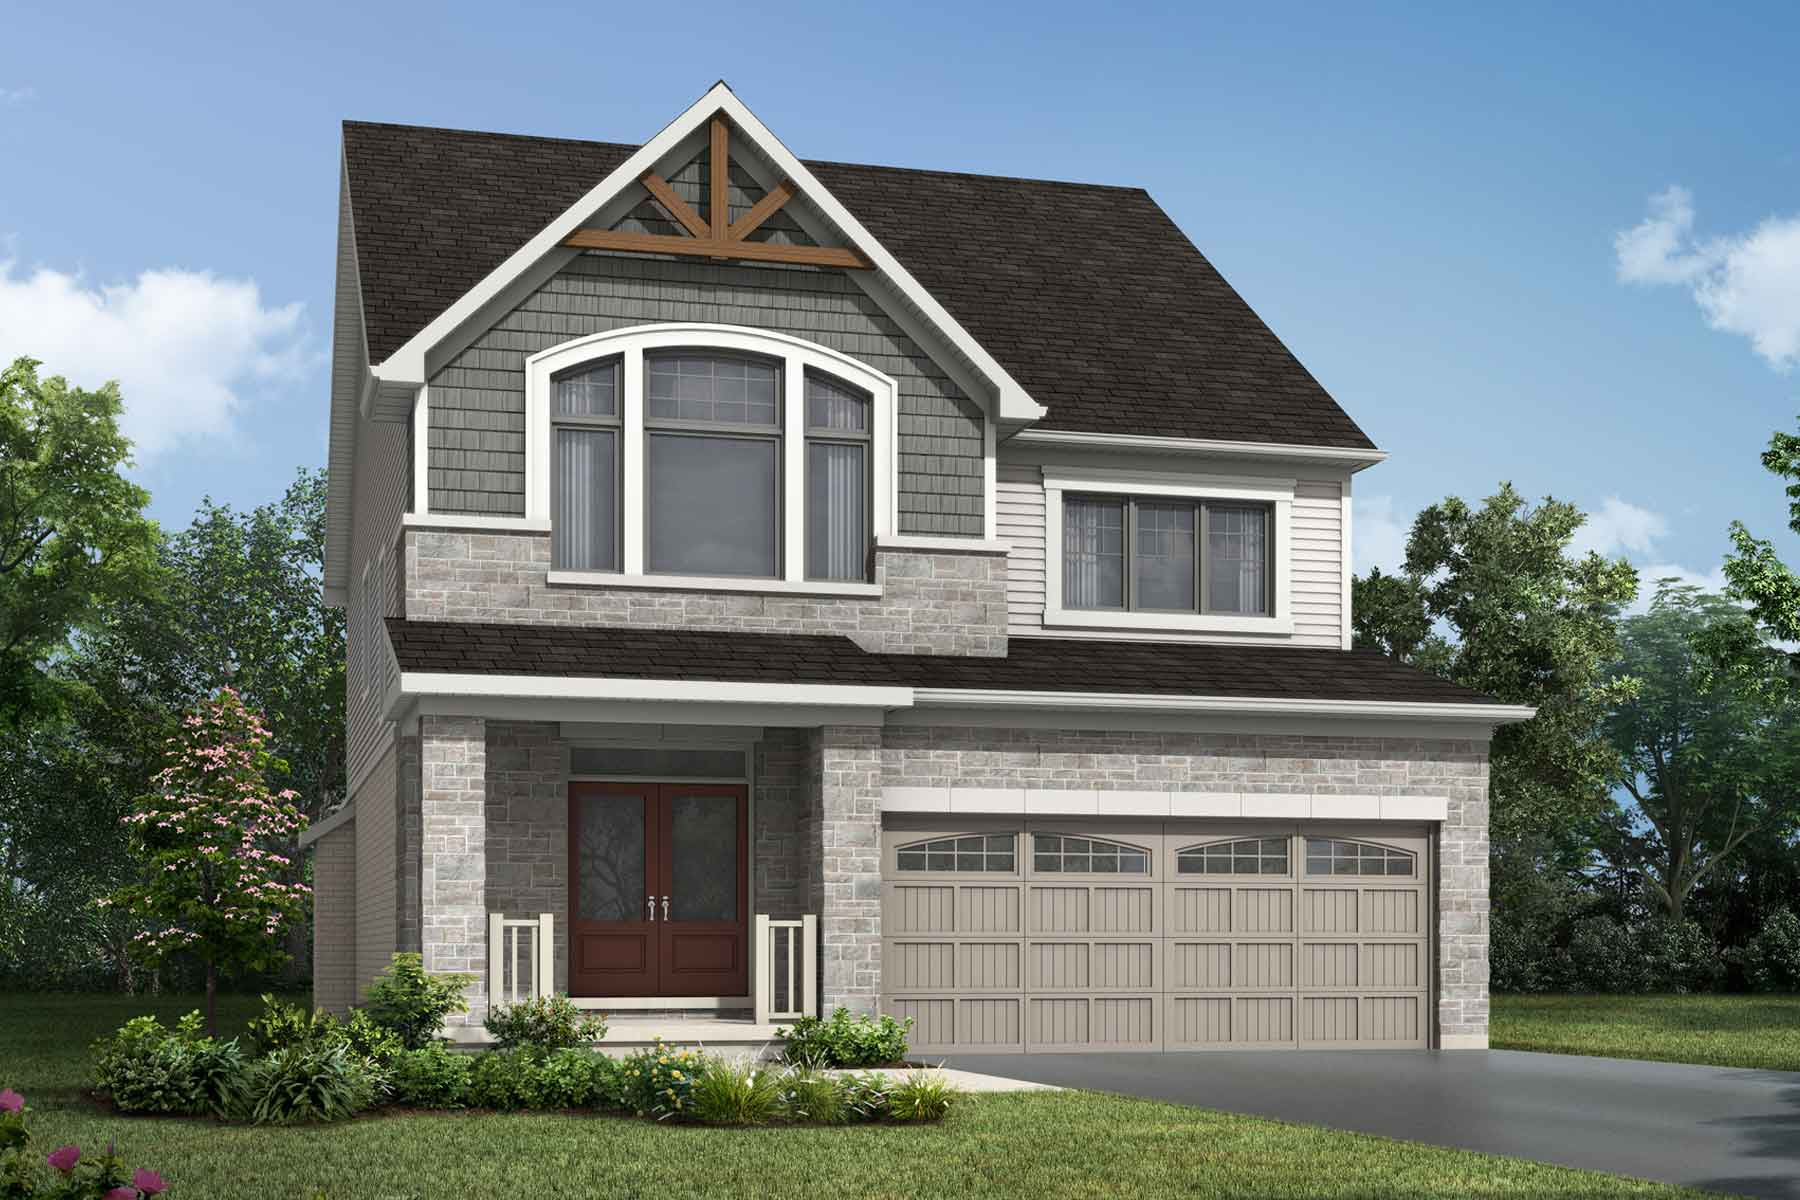 The Hawkesville Plan muskokan_southestates_hawkesville at Wildflower Crossing in Kitchener Ontario by Mattamy Homes